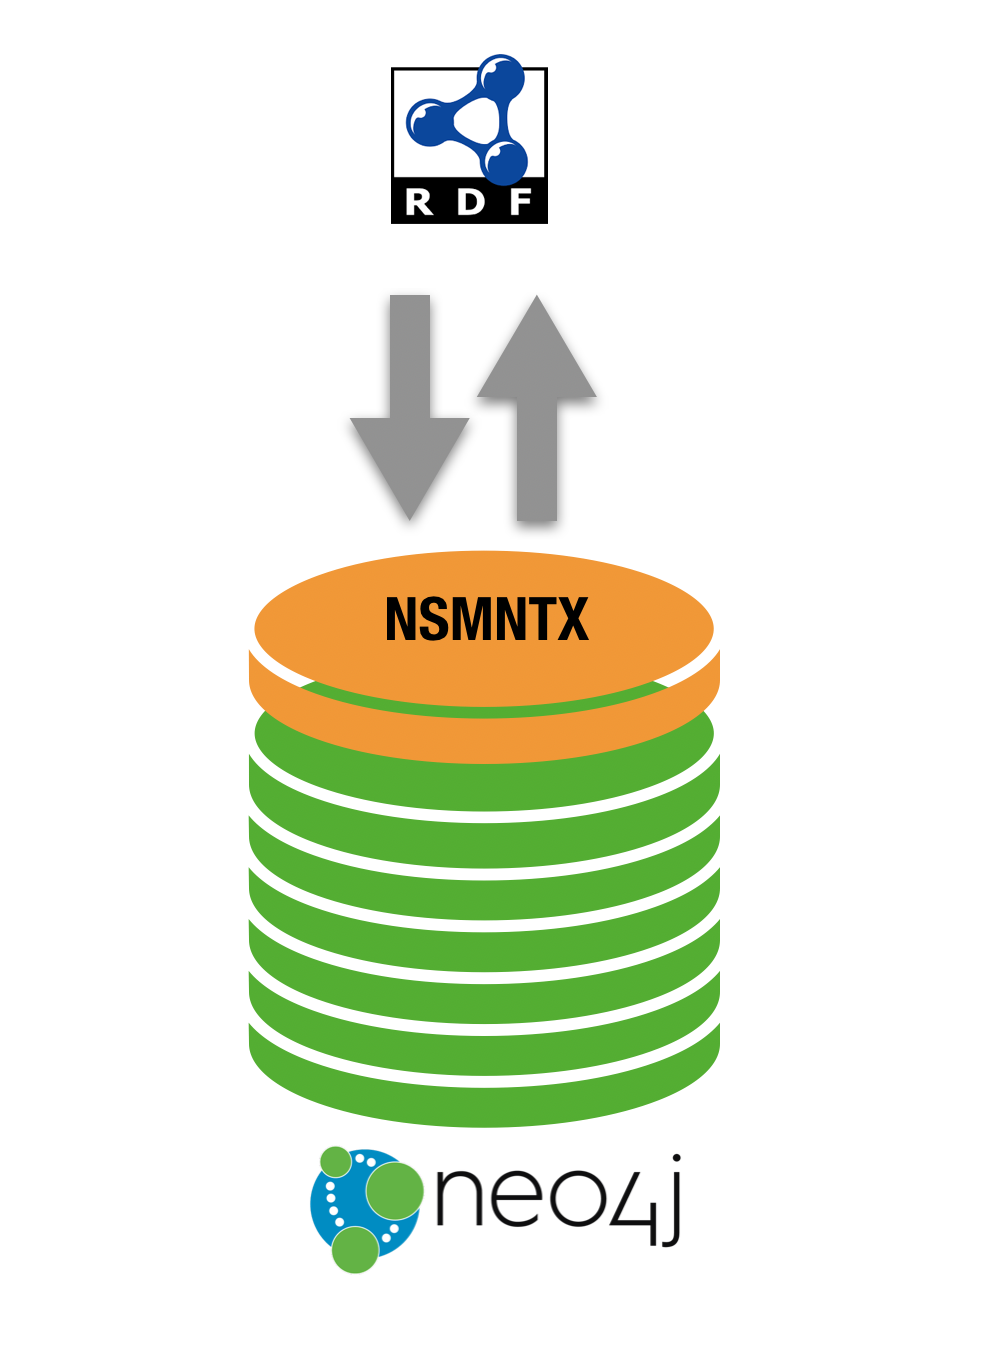 nsmntx block diagram